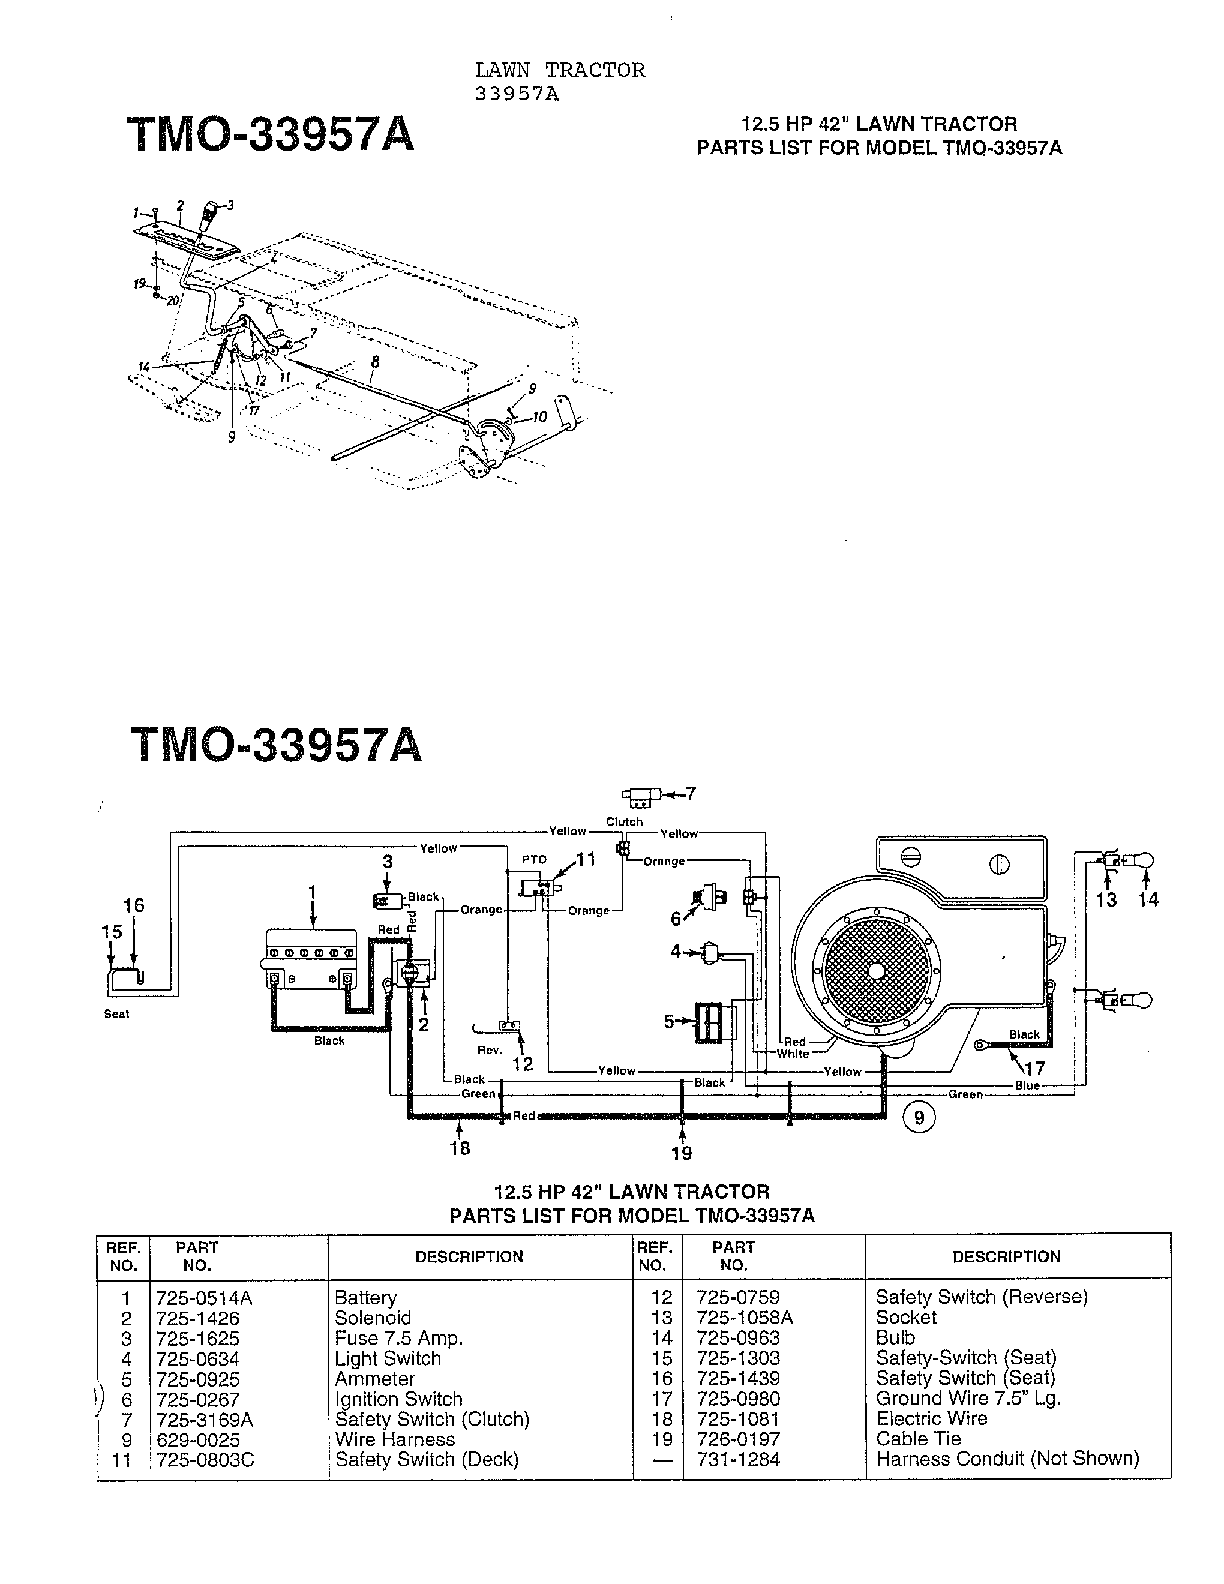 Astounding Mtd Model 33944A Lawn Tractor Genuine Parts Wiring Cloud Uslyletkolfr09Org